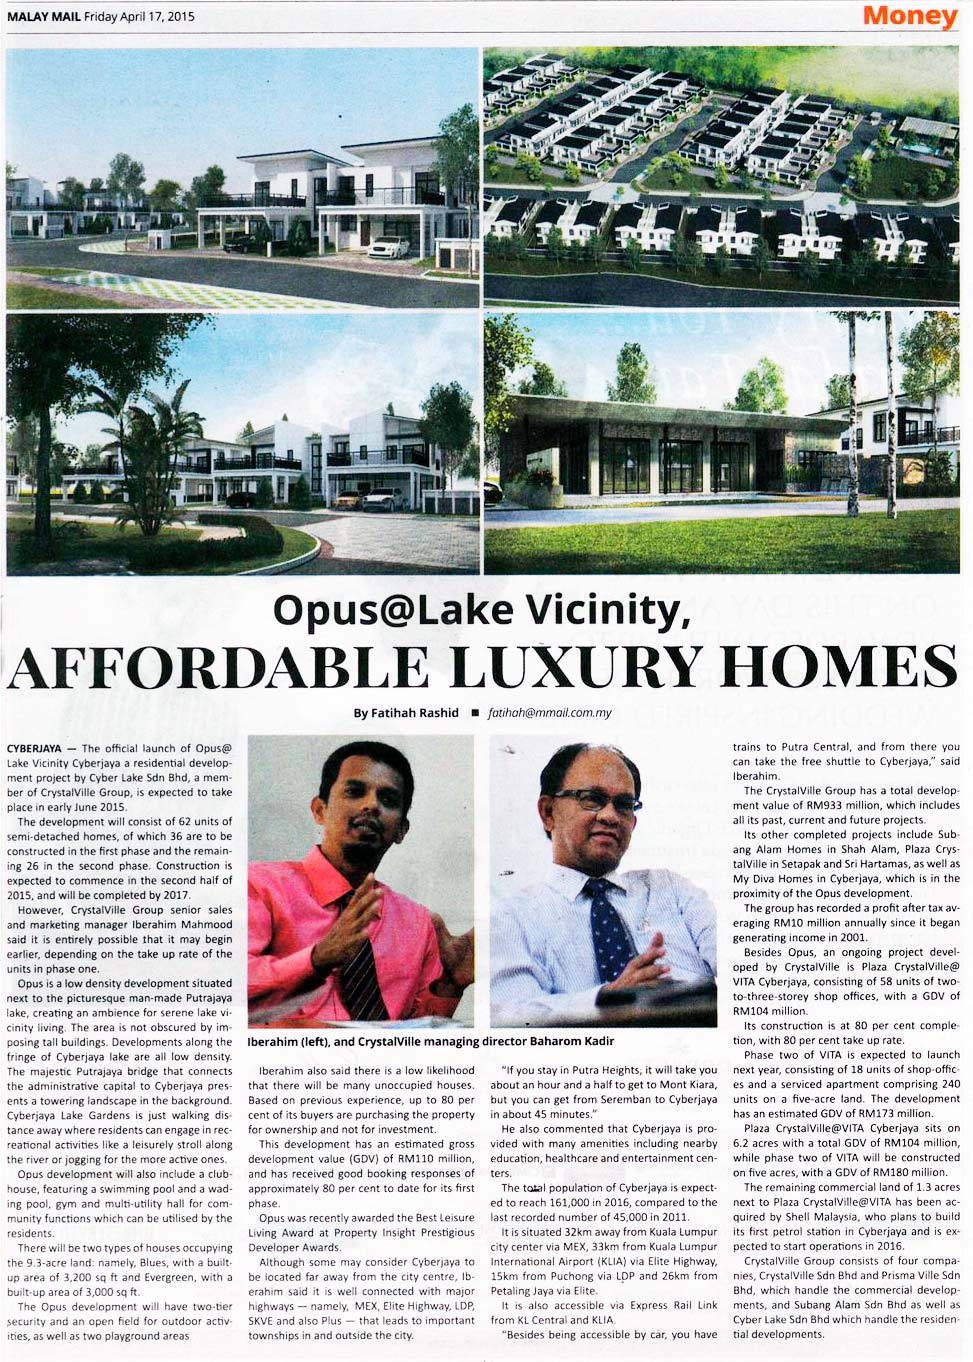 Opus Lake Vicinity - affordable luxury homes